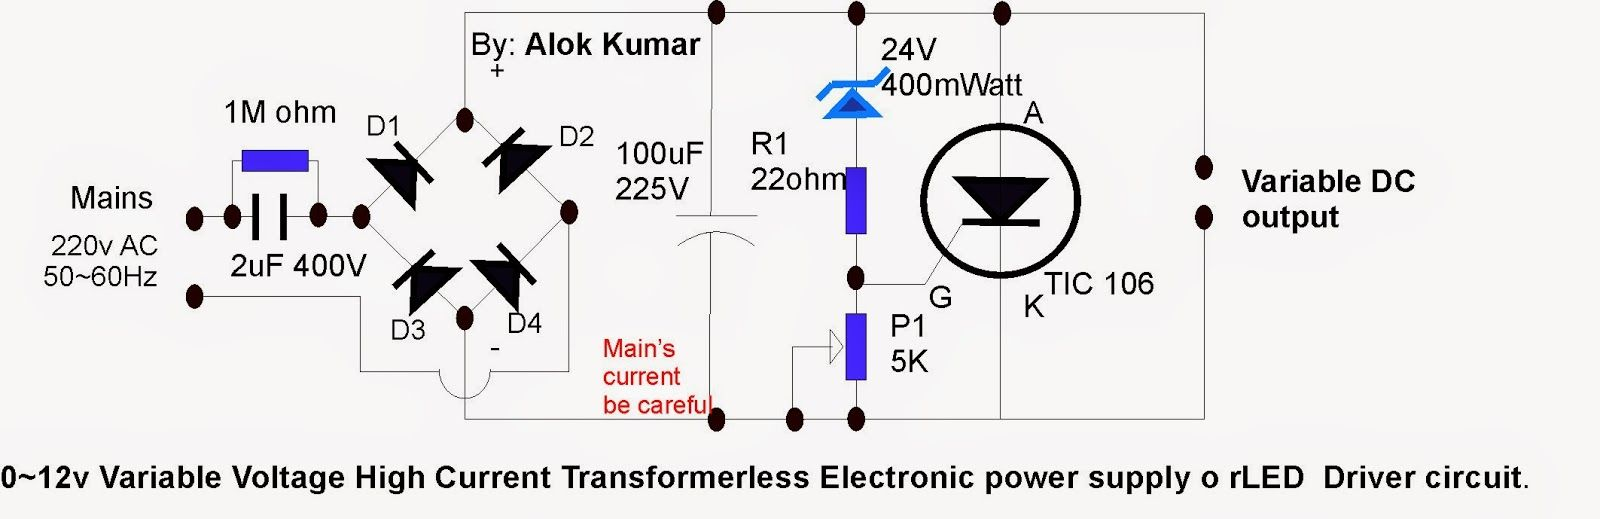 Electronic Circuits, Transformerless Power Supply, LED Drivers, Battery  chargers, Solar Circuits: How to make 0 to 12v Variable High Current  Transformerless ...